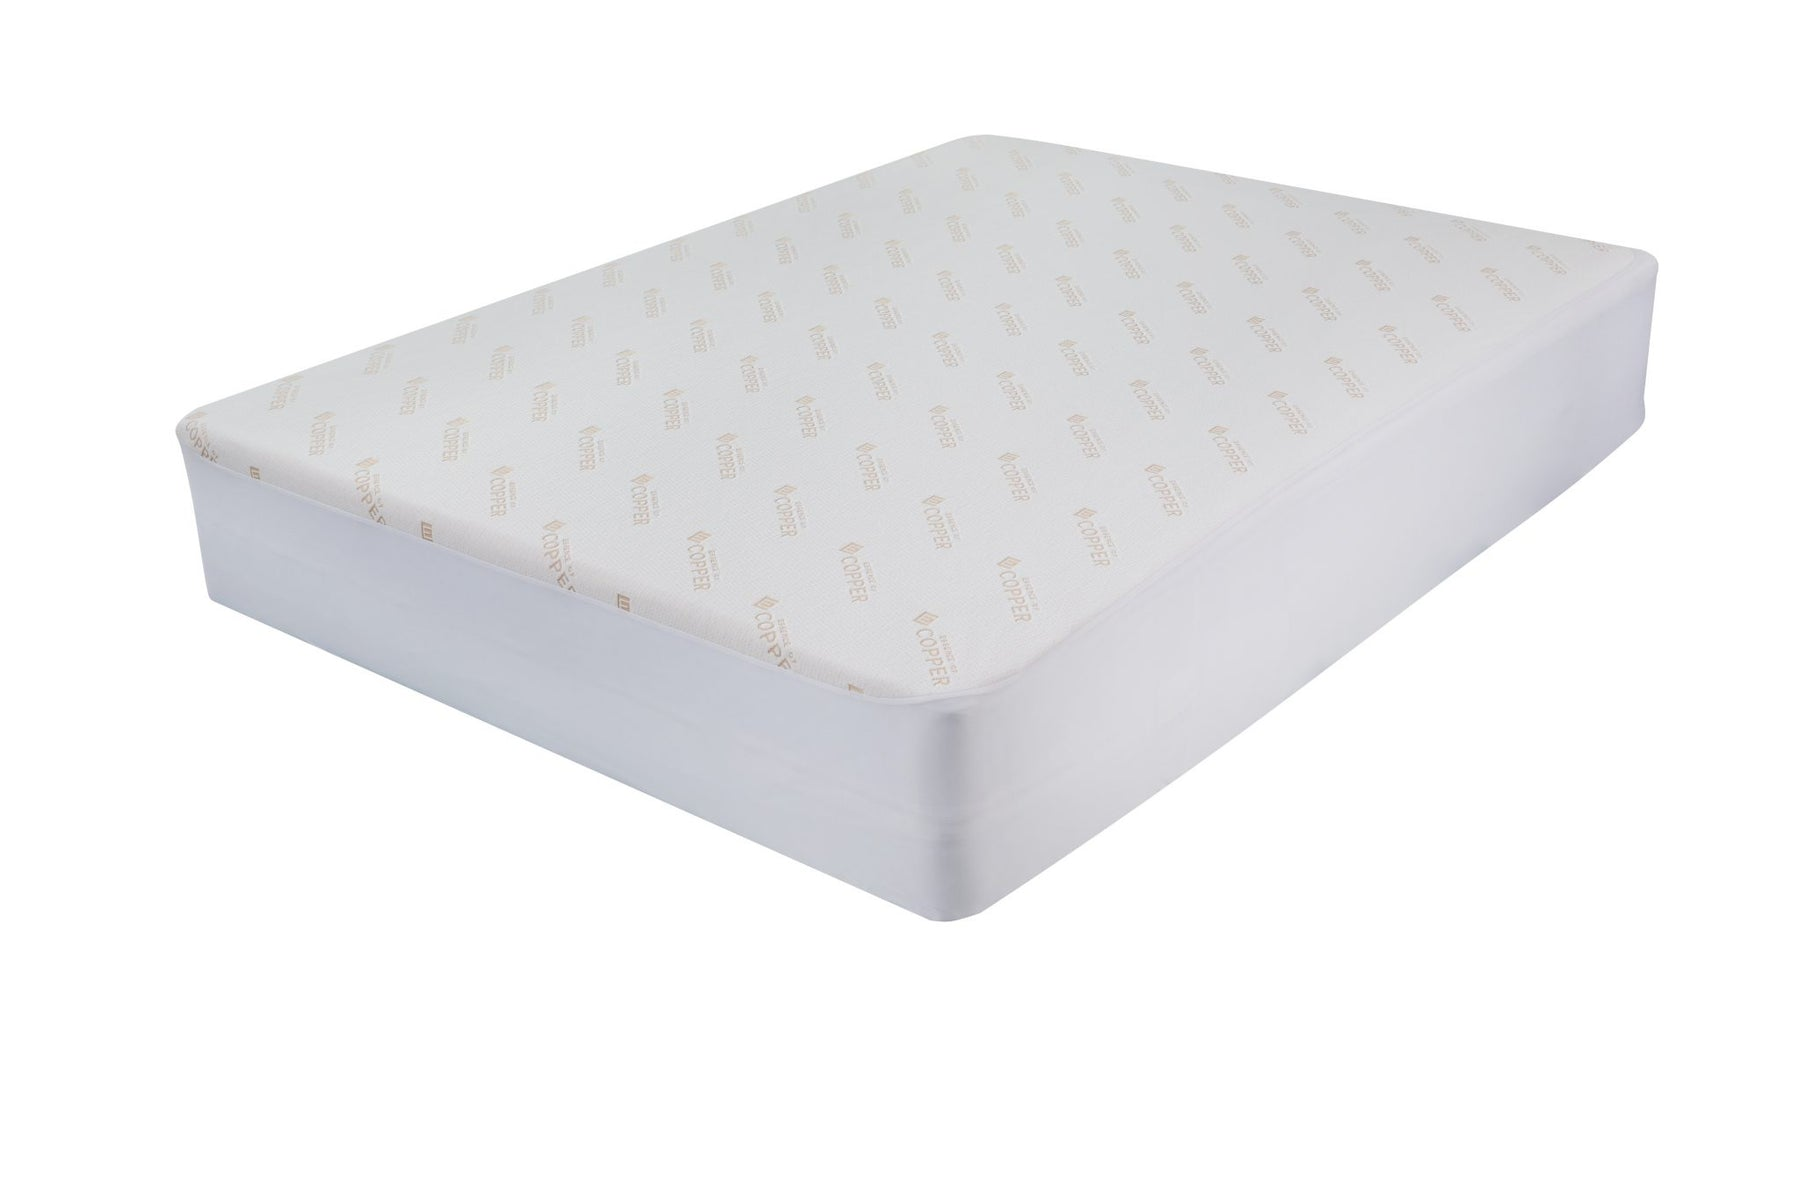 Copper Infused Waterproof Mattress Protector